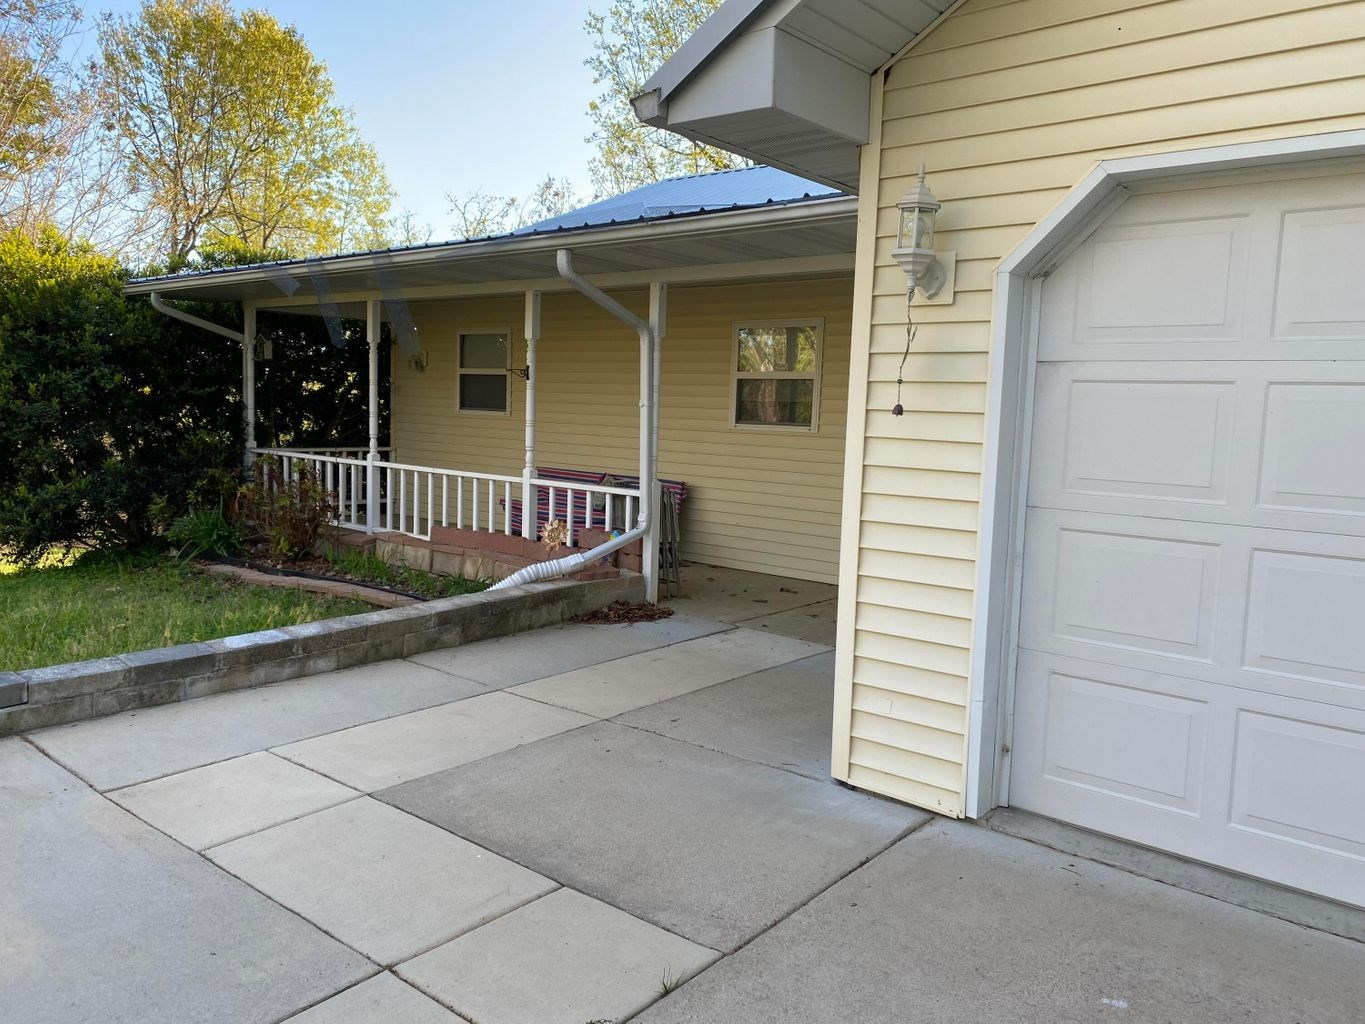 Move in Ready Home in Northern Arkansas near Lakes & Rivers